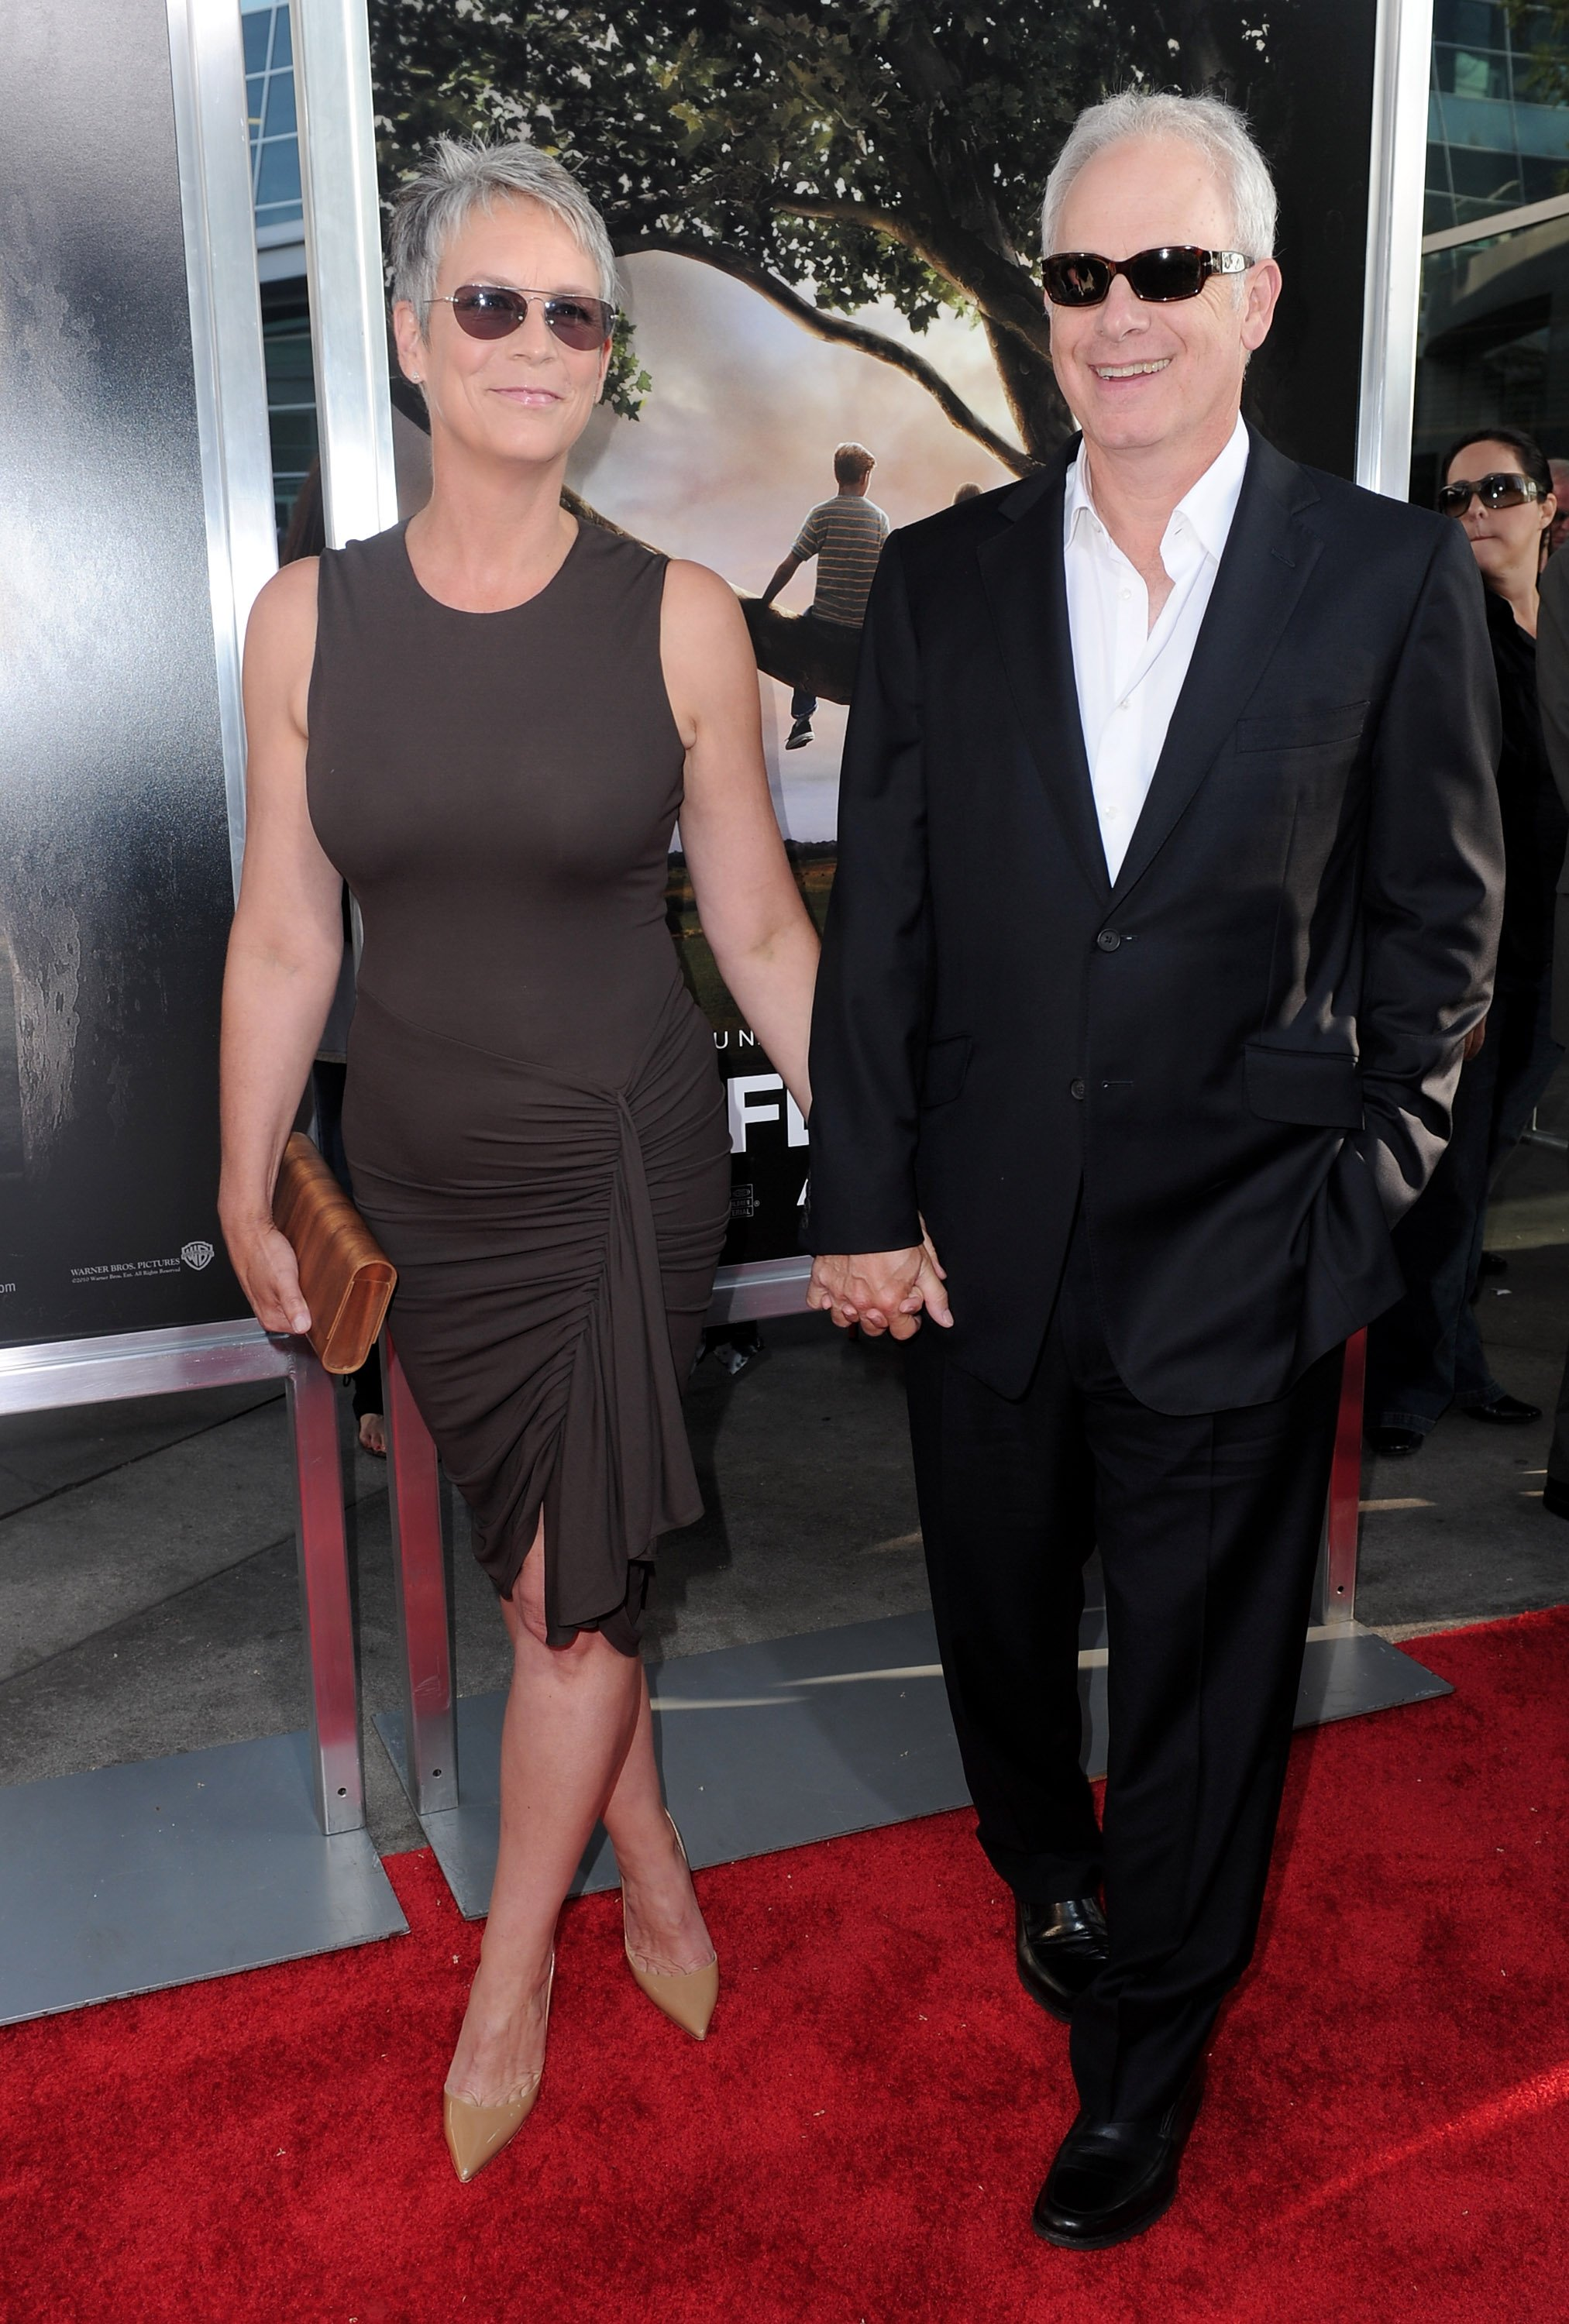 """Jamie Lee Curtis and Christopher Guest attends the premiere of """"Flipped"""" in Hollywood on July 26, 2010 